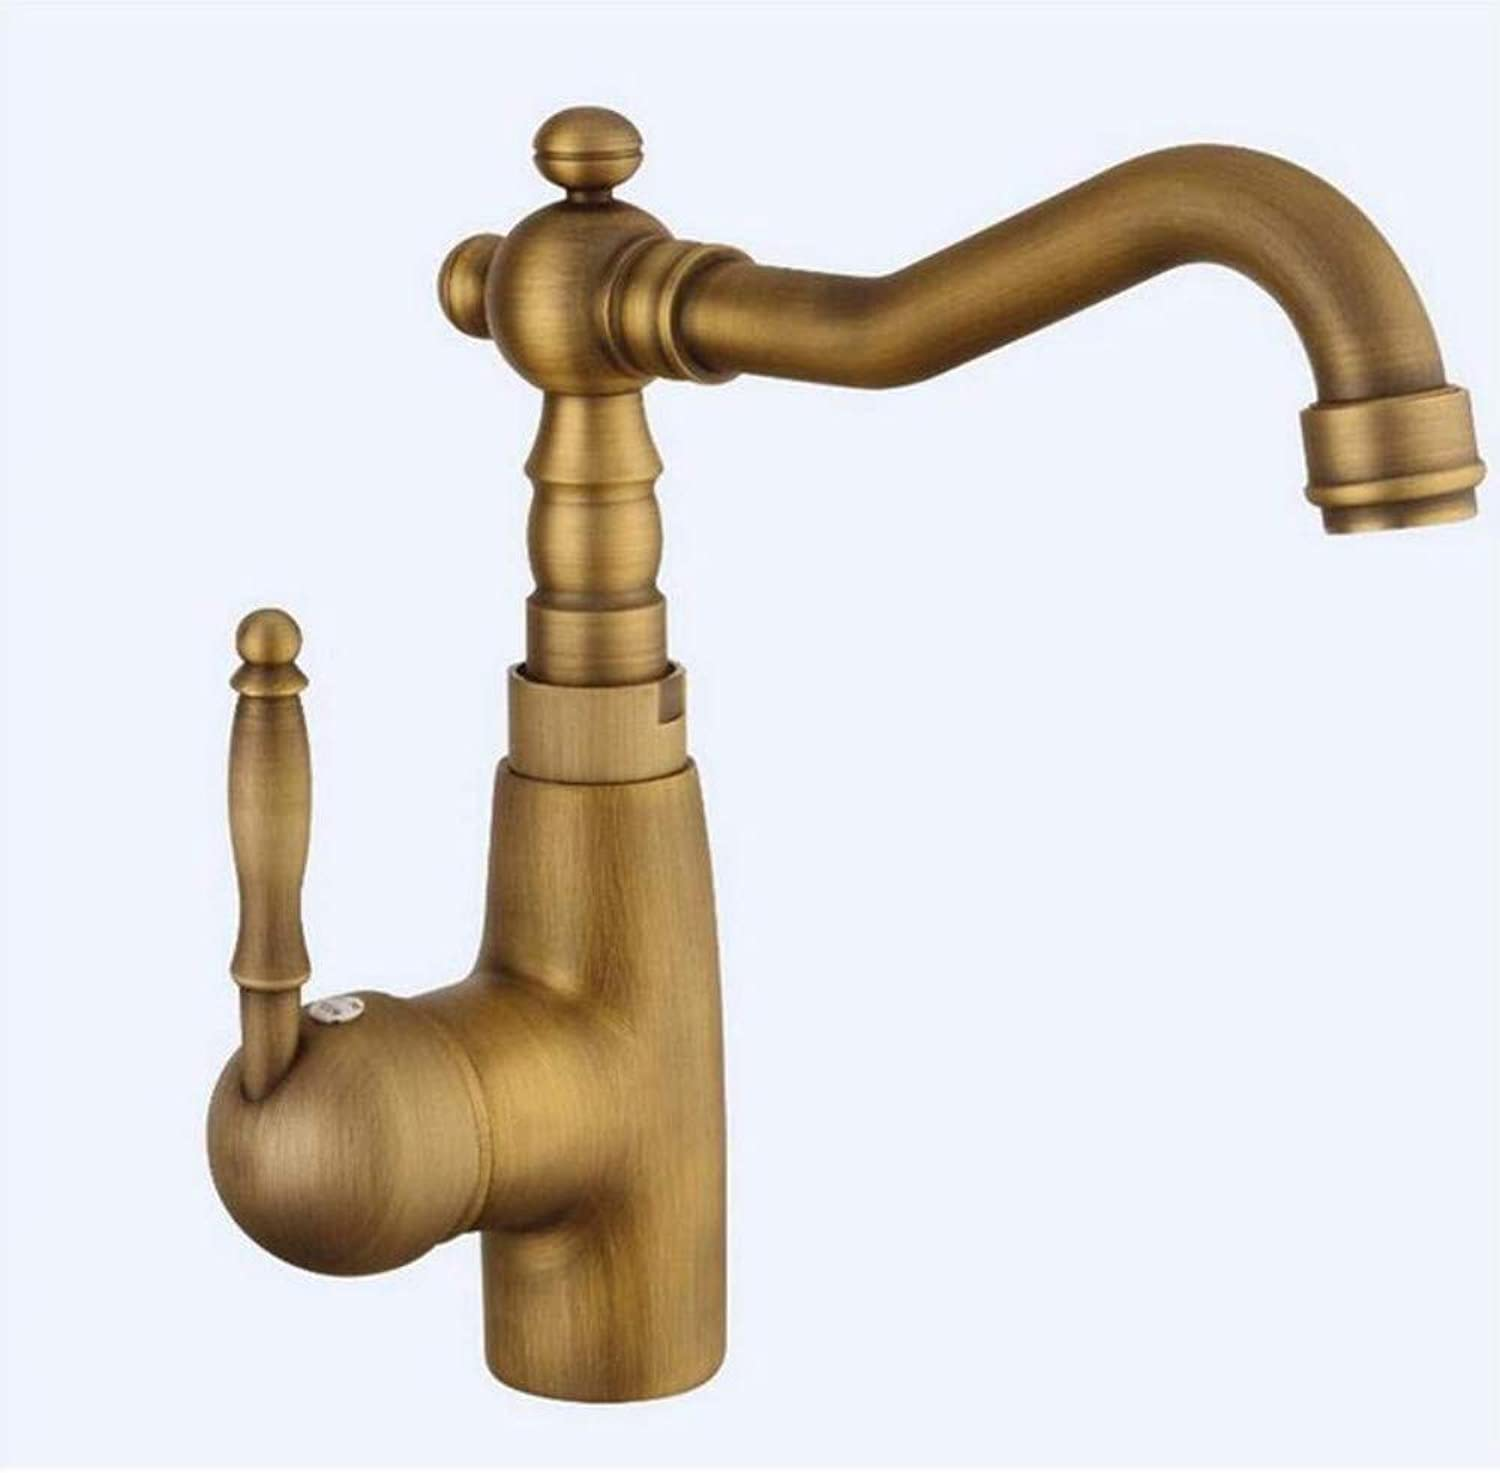 Ceramic Crane Cold and Hot Kitchen Sink Tap Water Mixers Brass